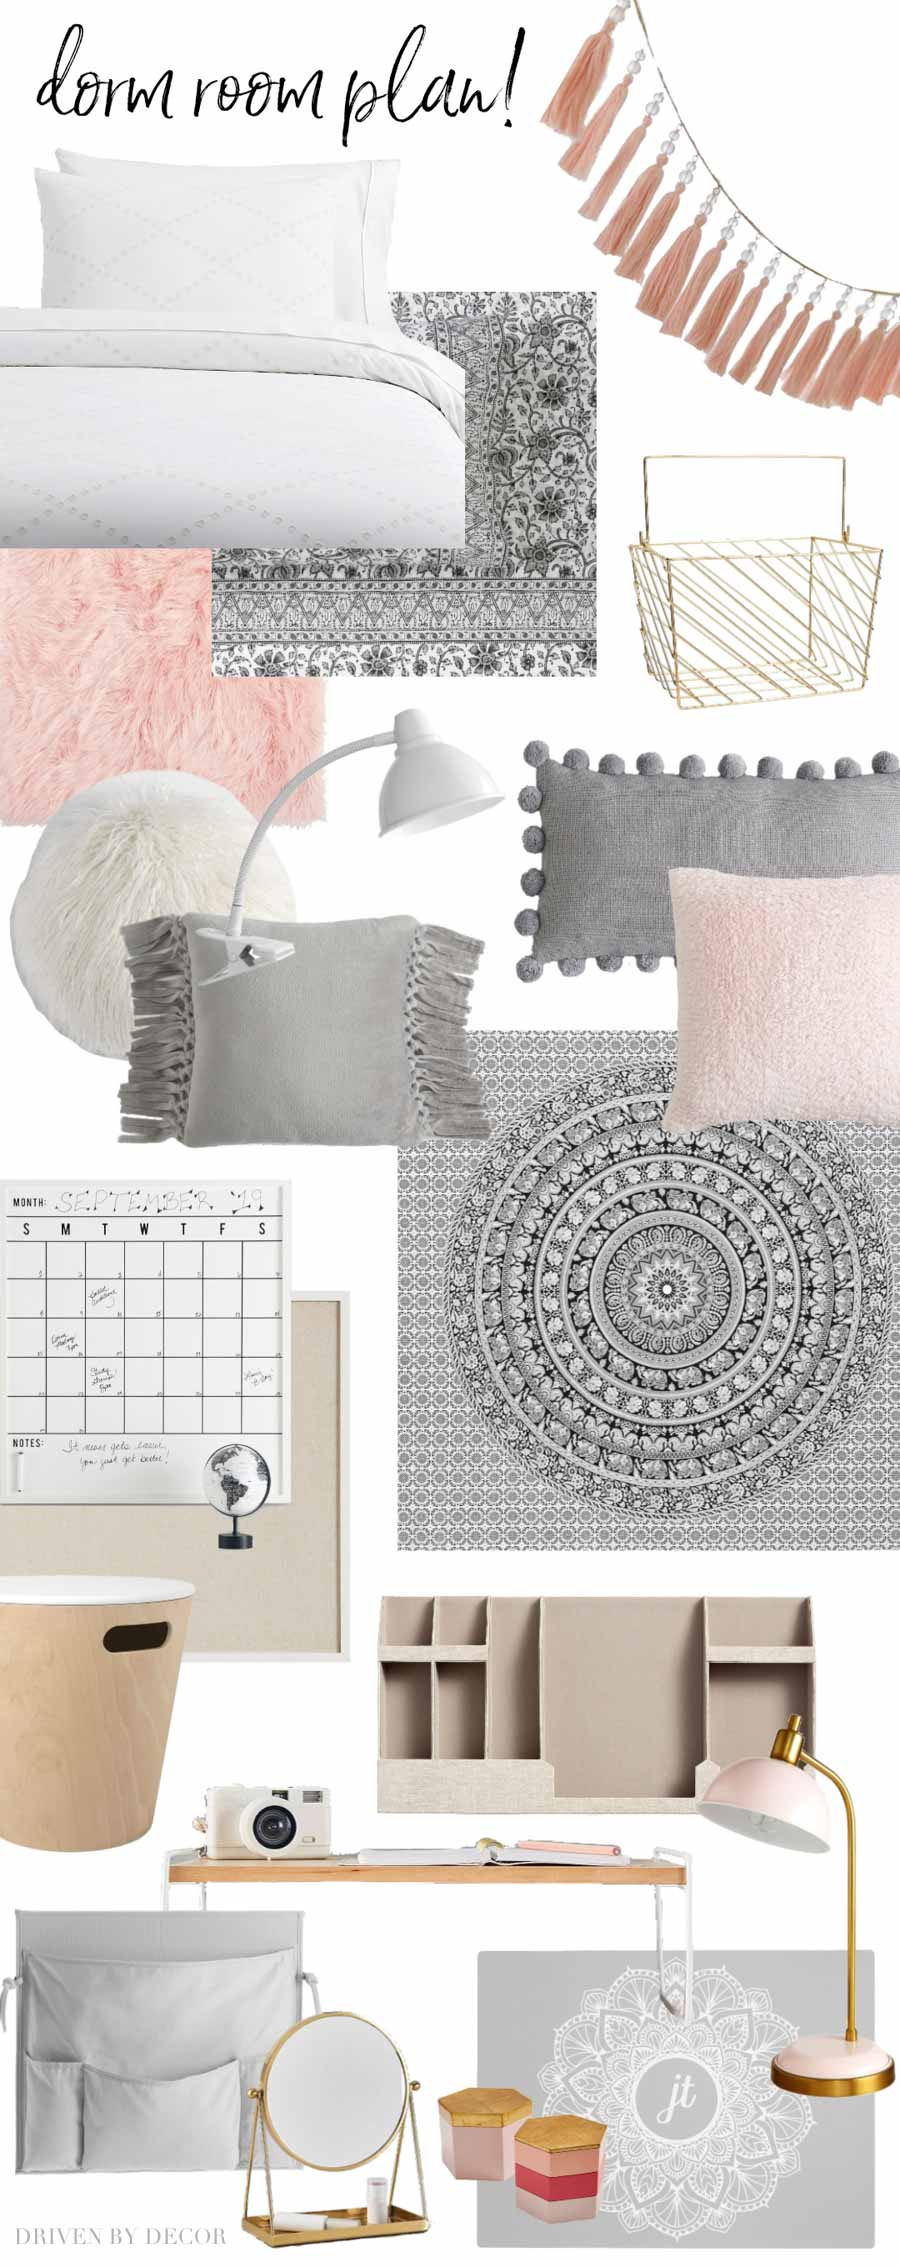 Girls dorm room plan! Getting lots of decorating ideas from this post!!